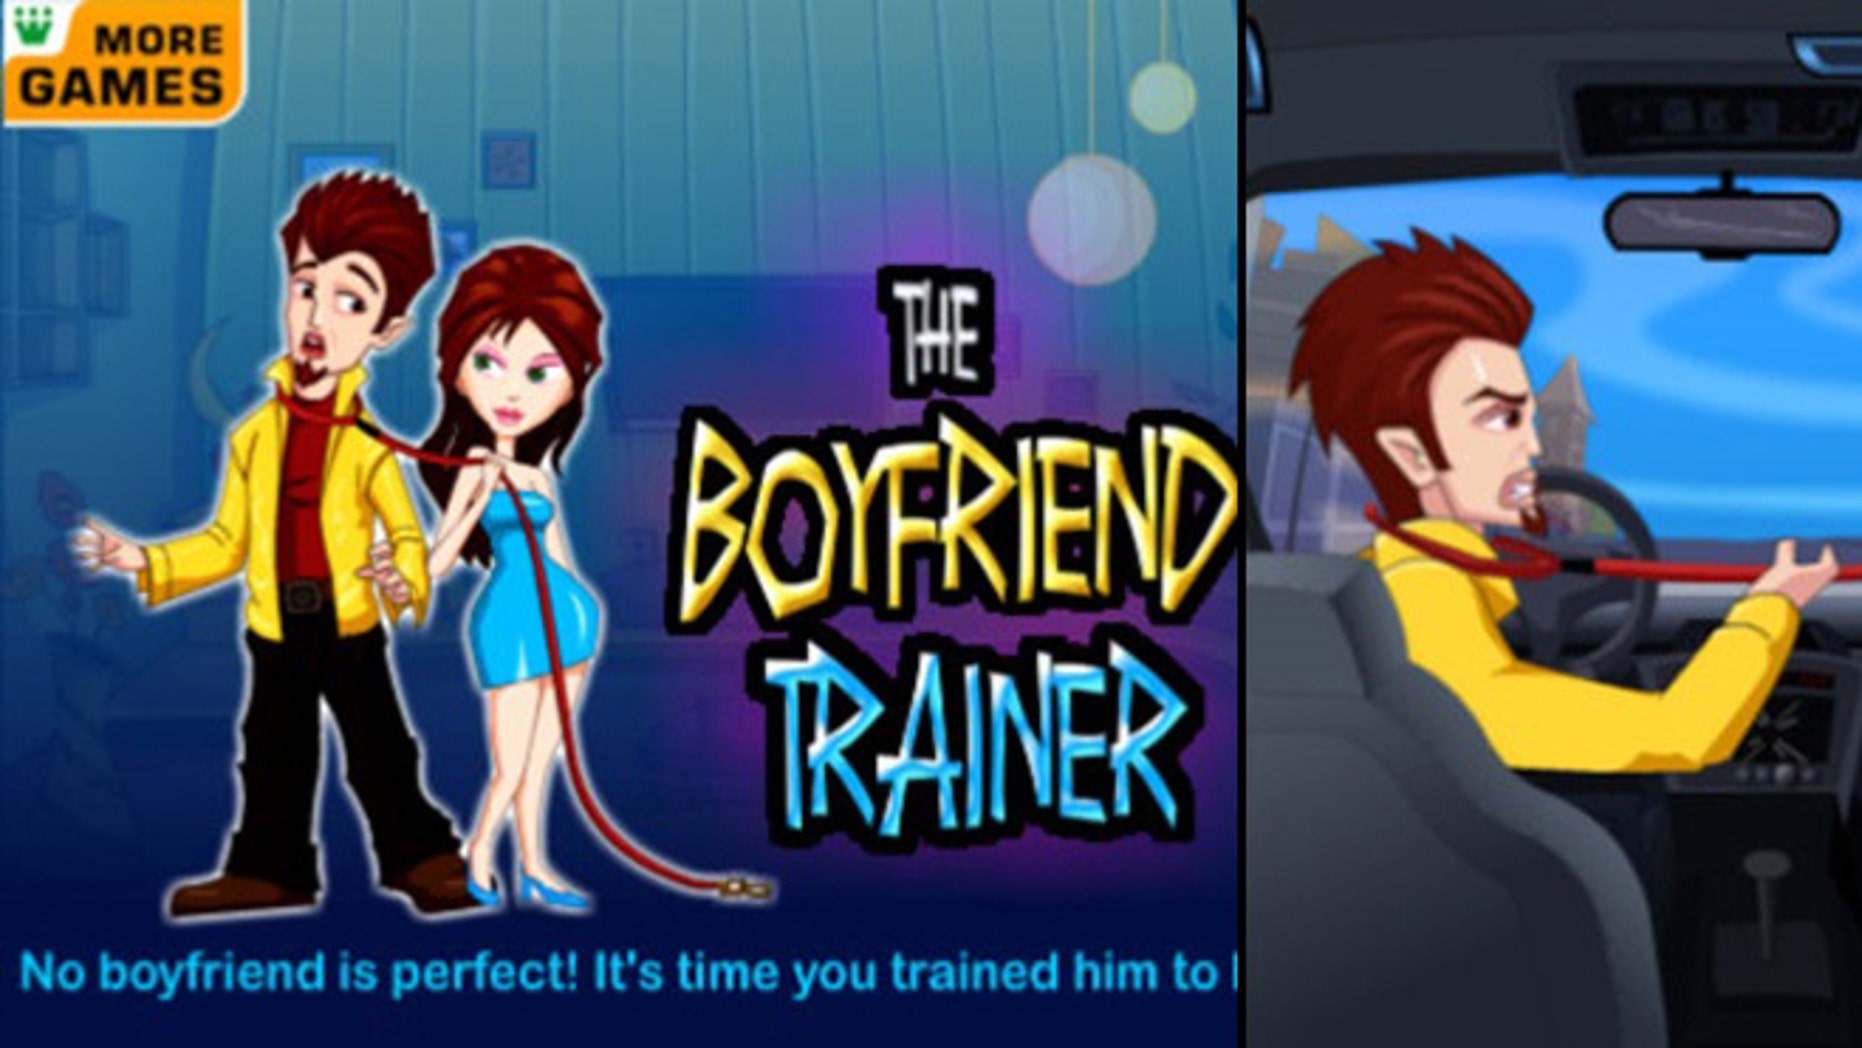 "The ""Boyfriend Trainer"" app suggests that ""when scolding doesn't work, just zap him, whack him and train him to be your ideal man!"""